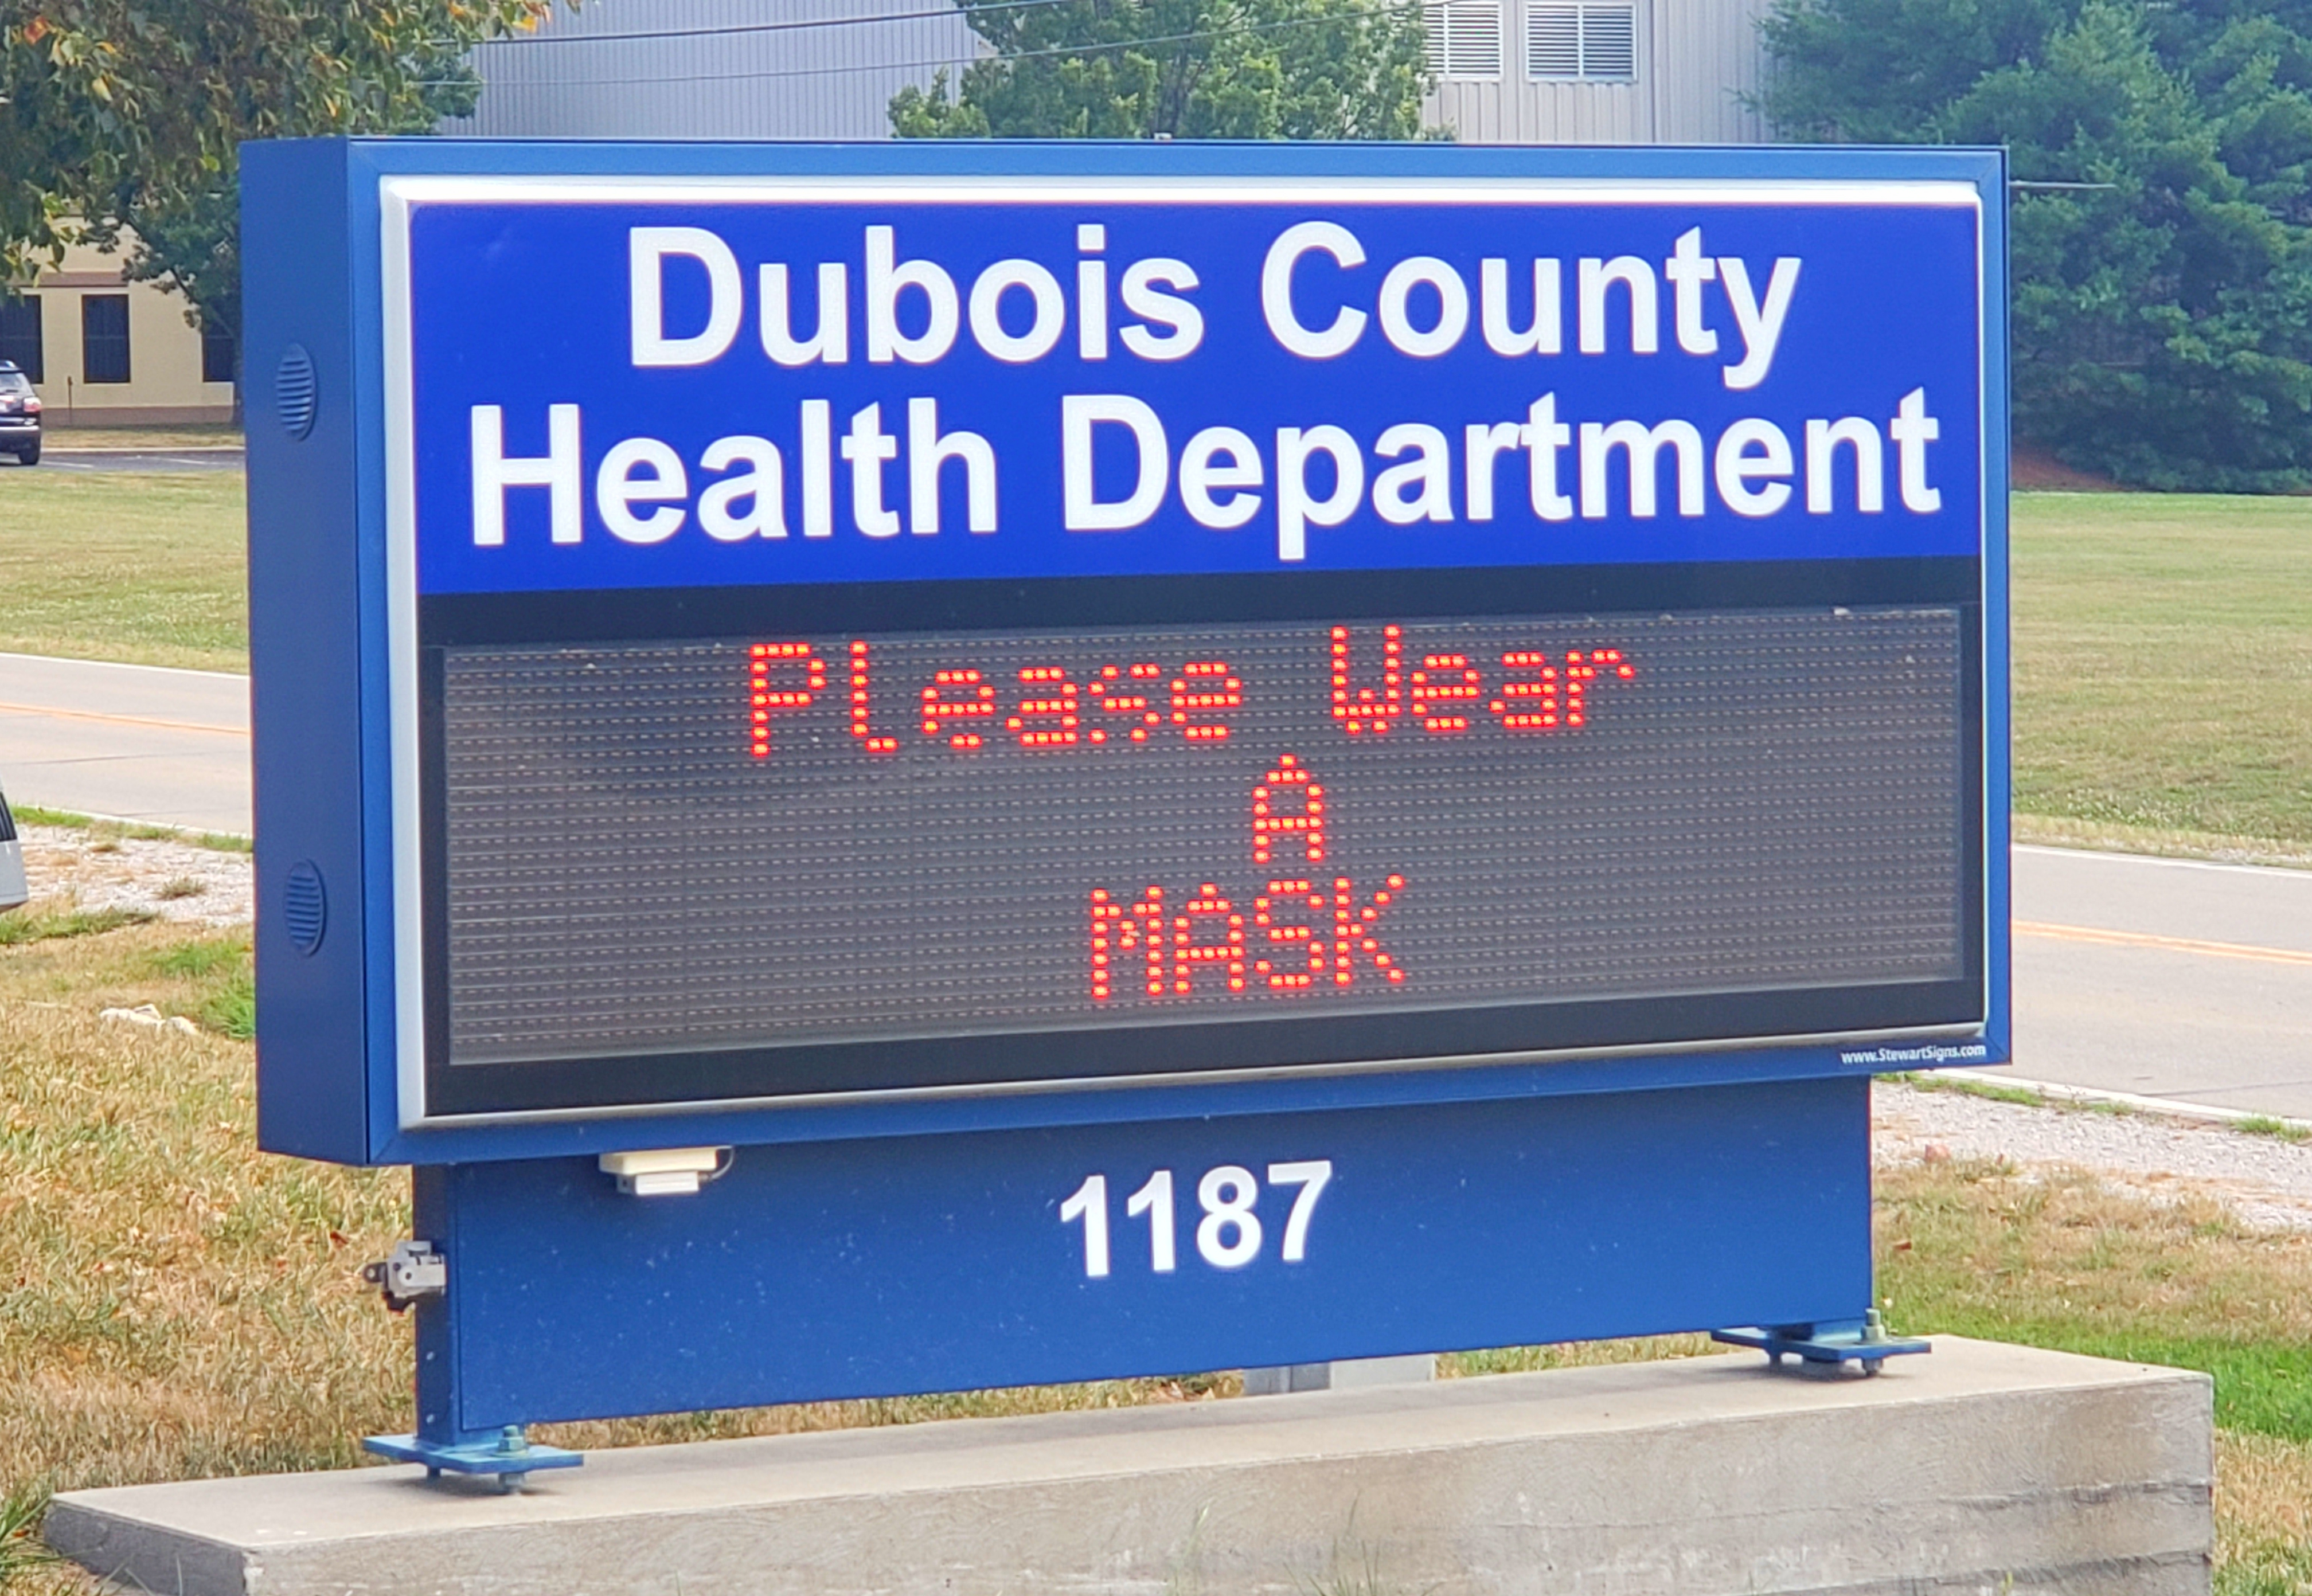 Number of Active Cases of COVID-19 in Dubois County Under 100 For First Time in Months